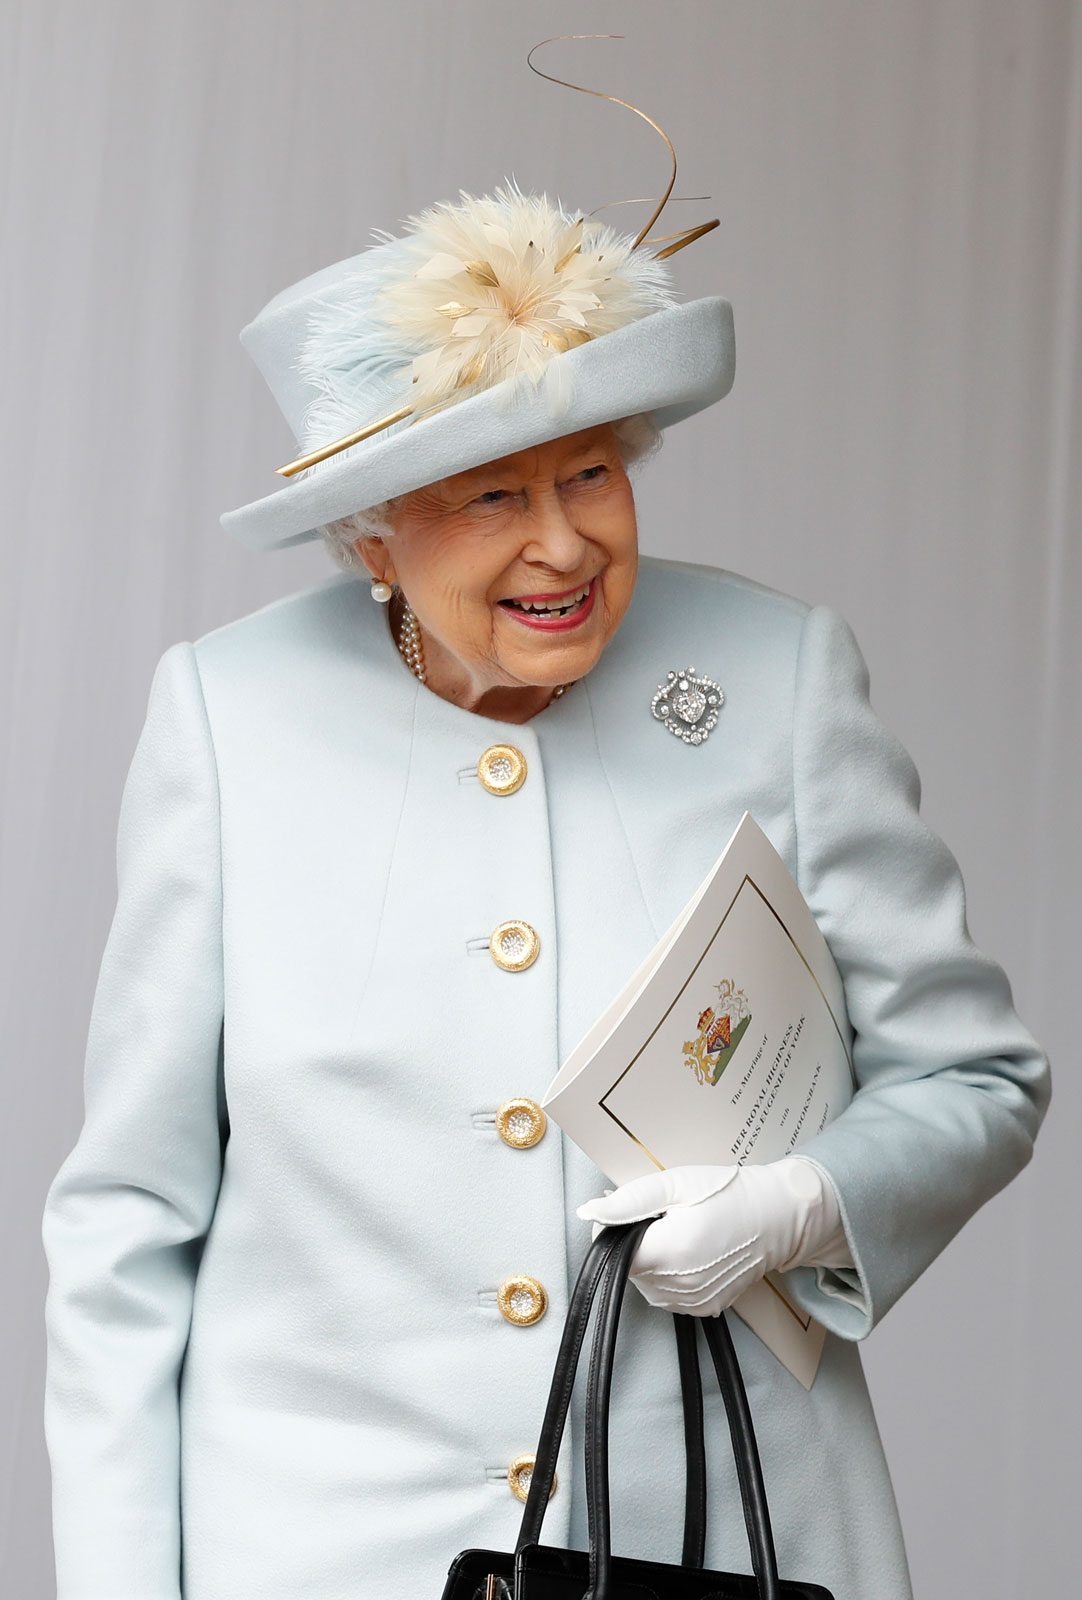 The Queen at the wedding of Princess Eugenie, on Oct. 12, 2018.